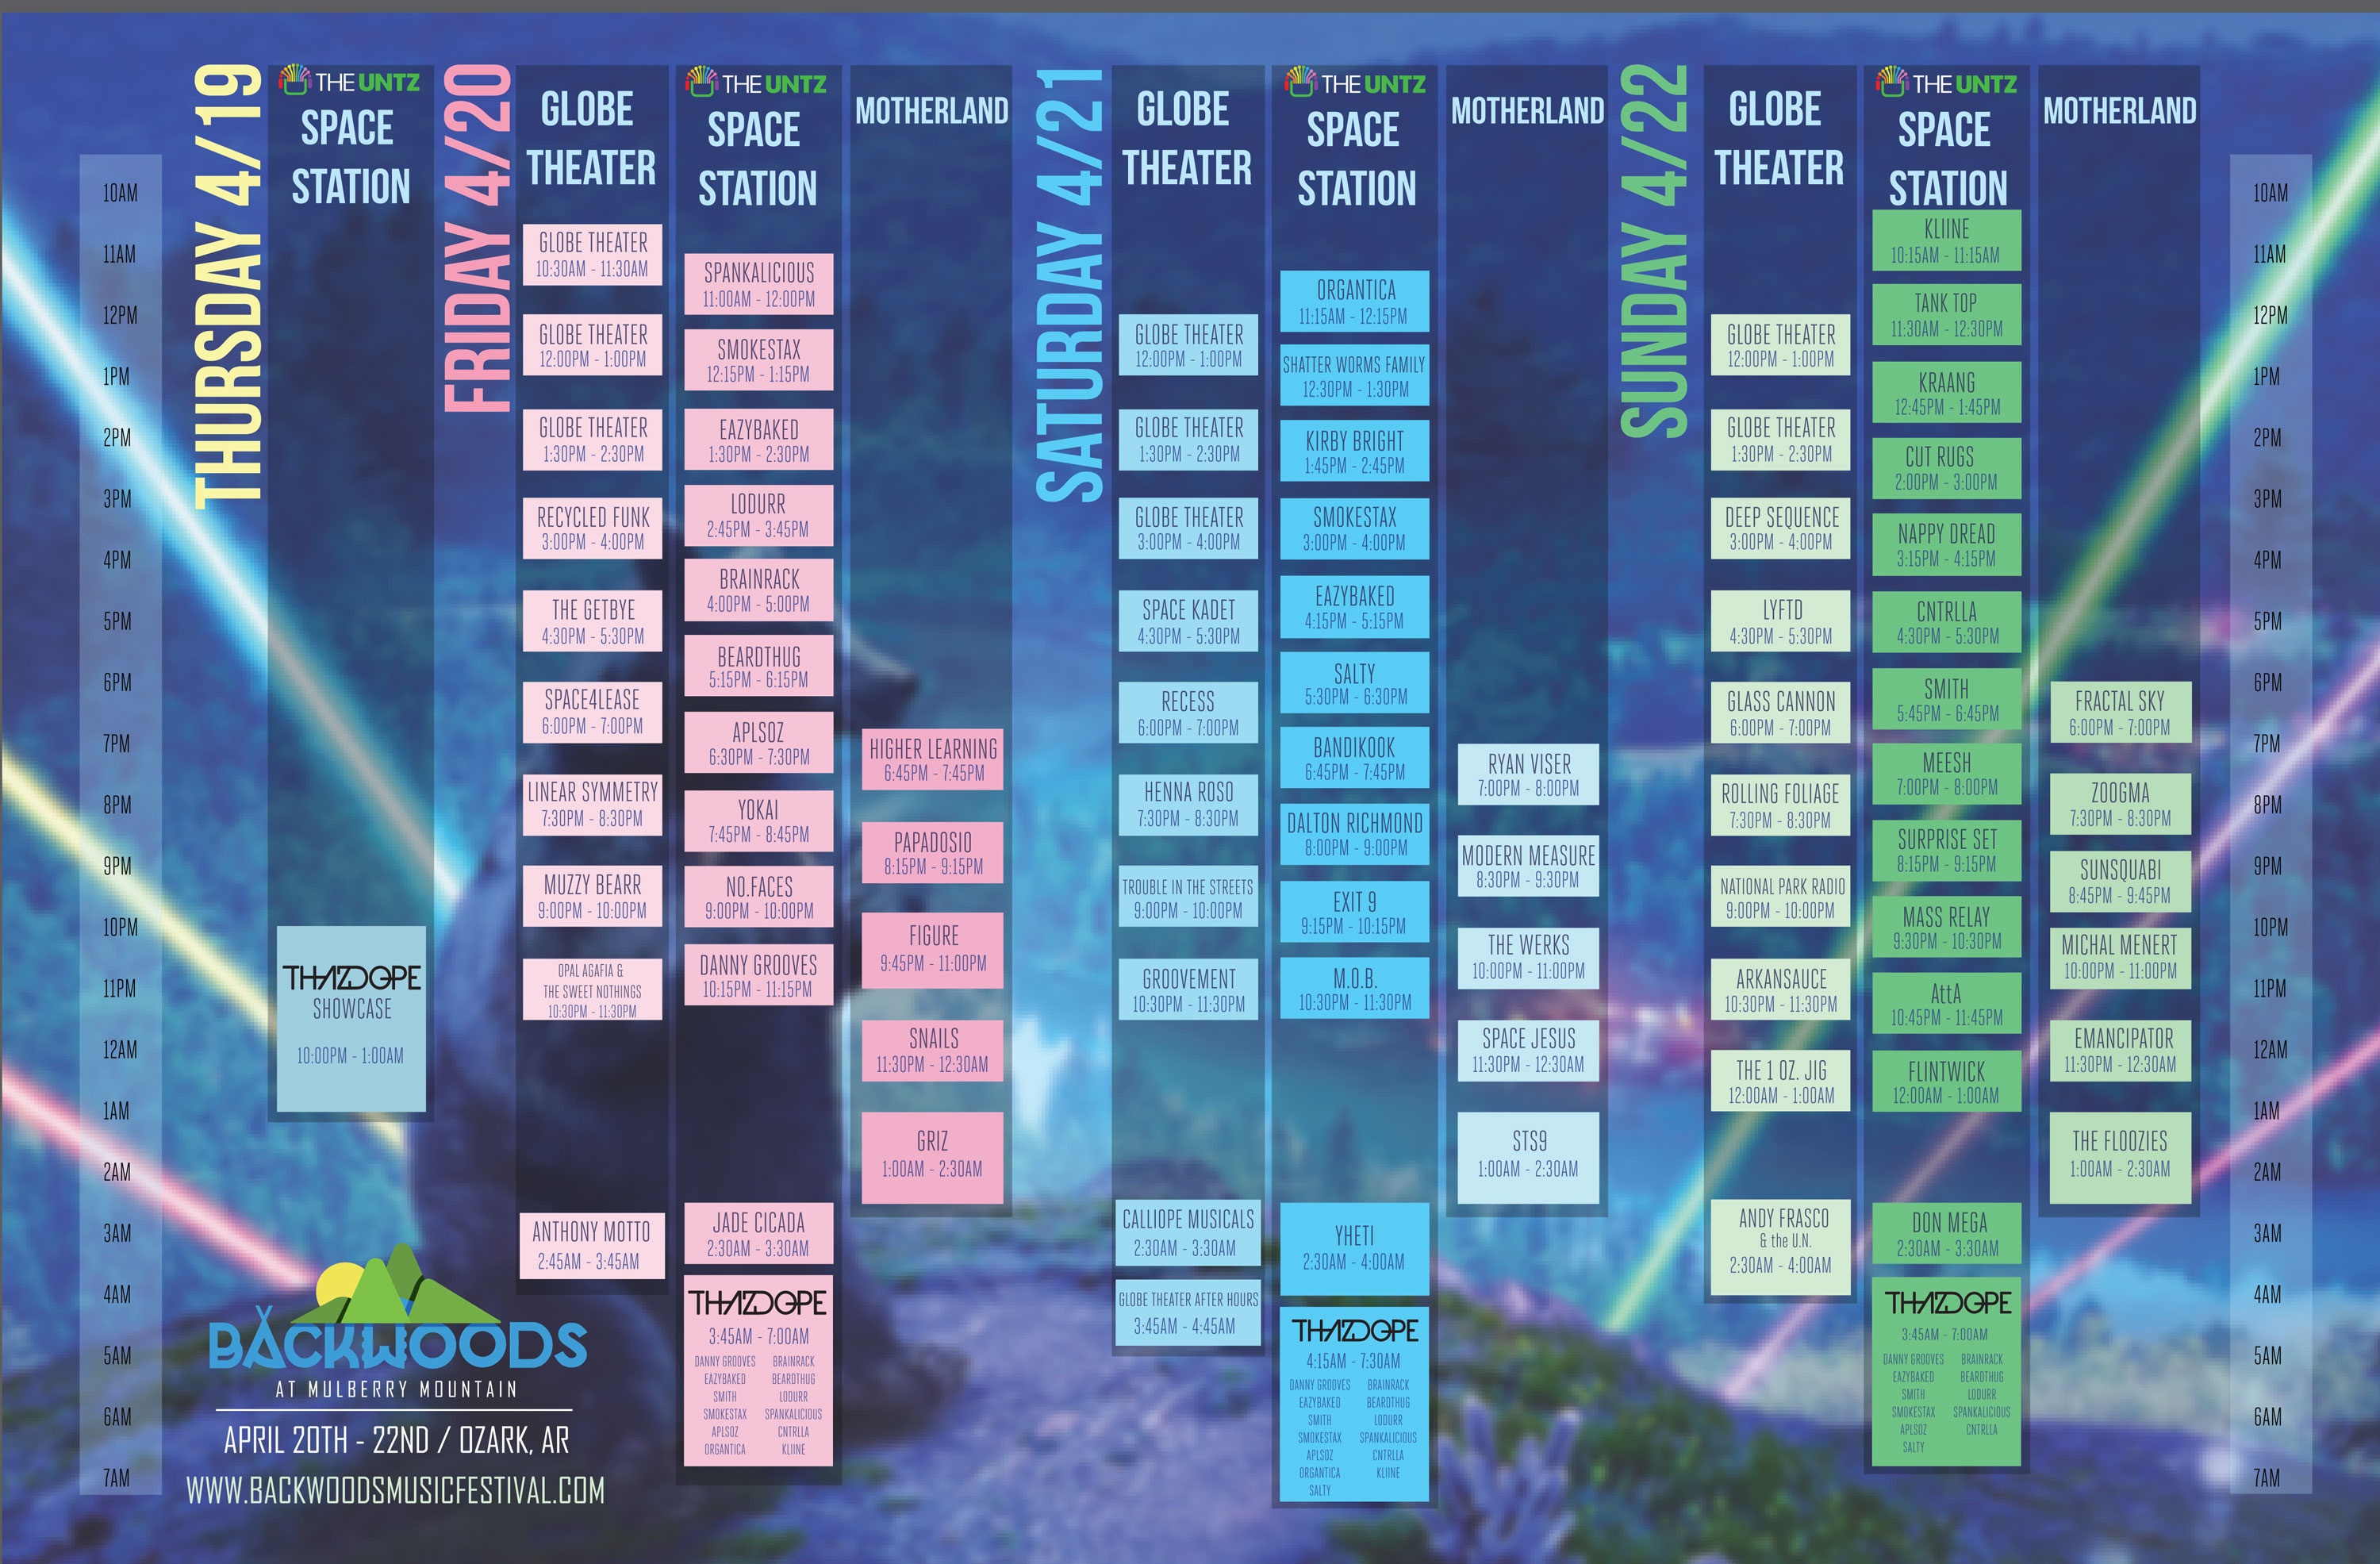 Backwoods 2018 Schedule